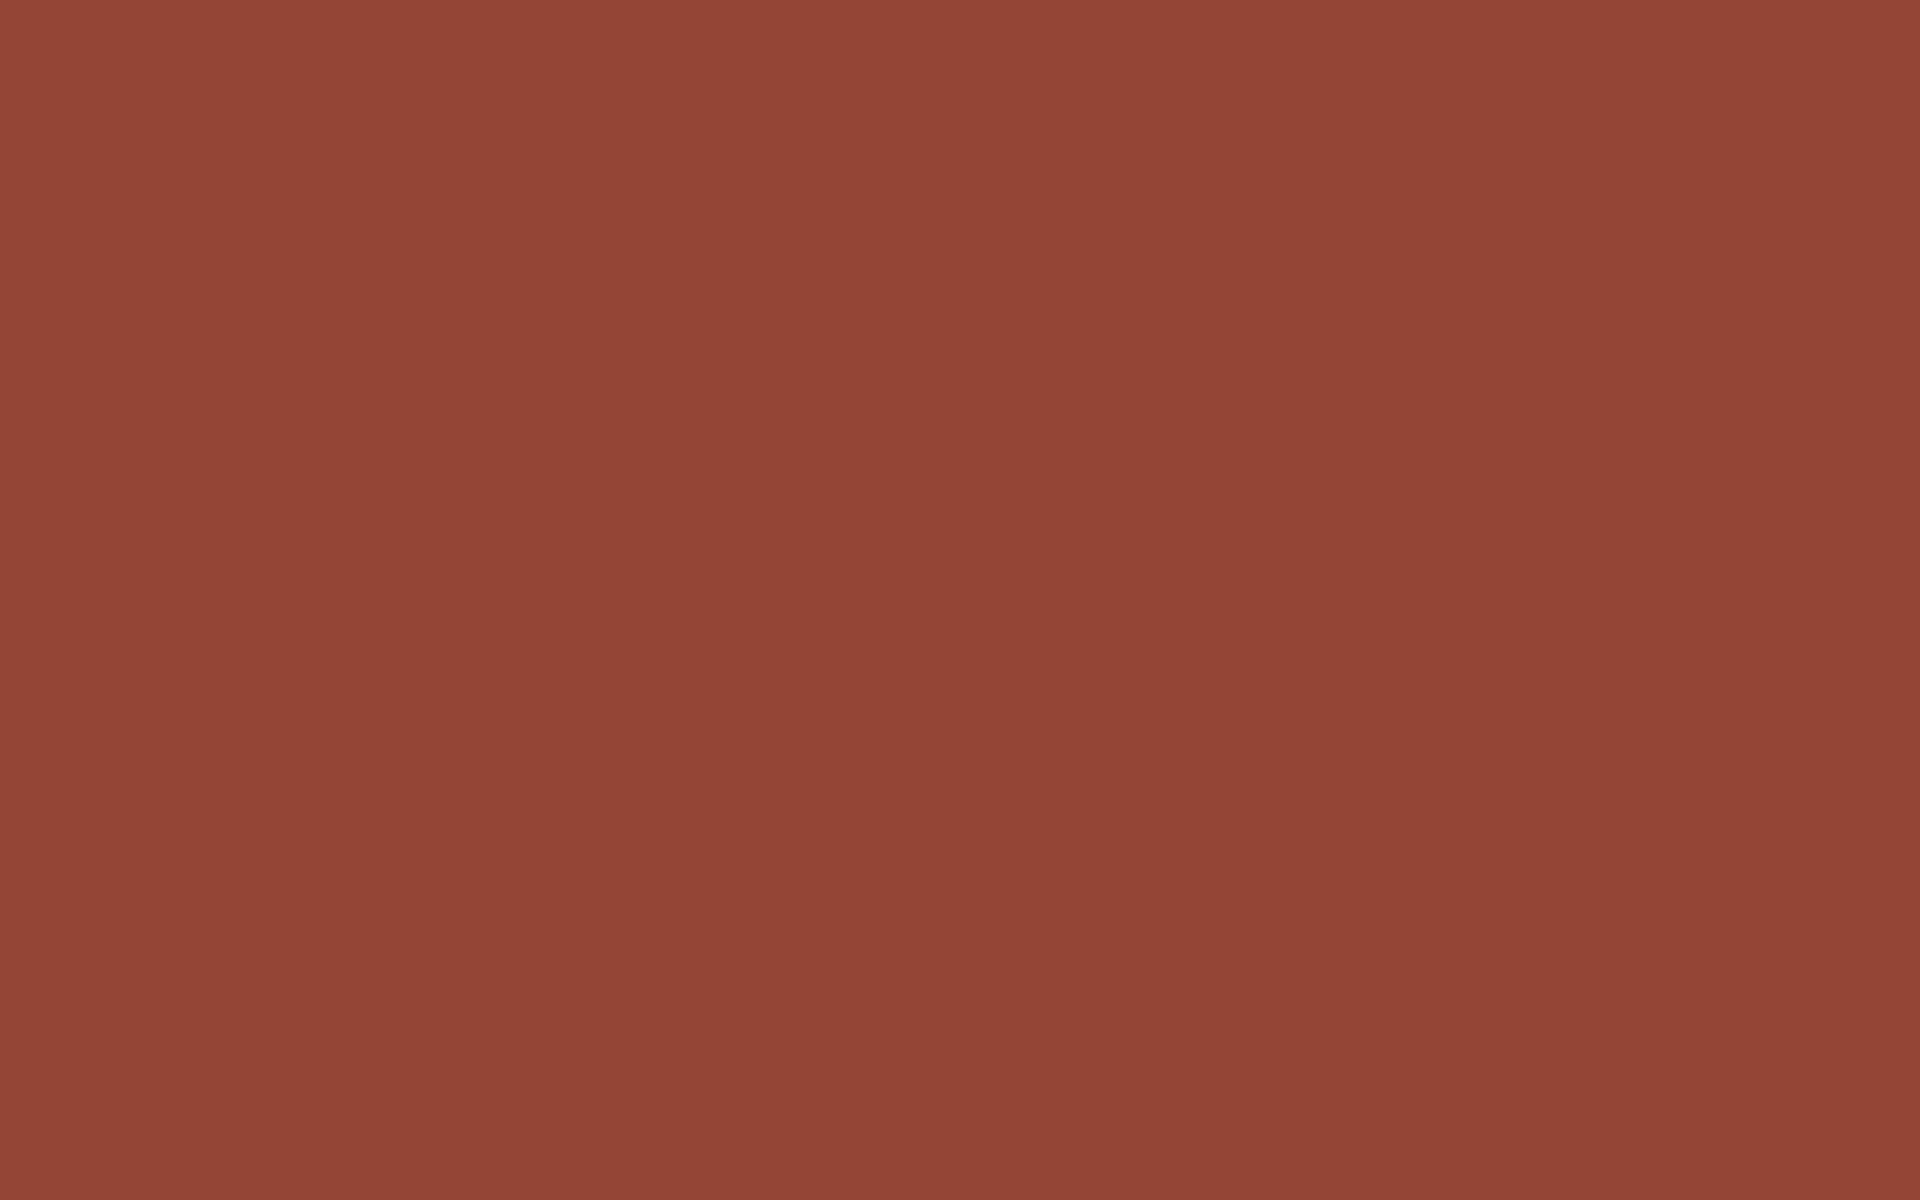 1920x1200 Chestnut Solid Color Background